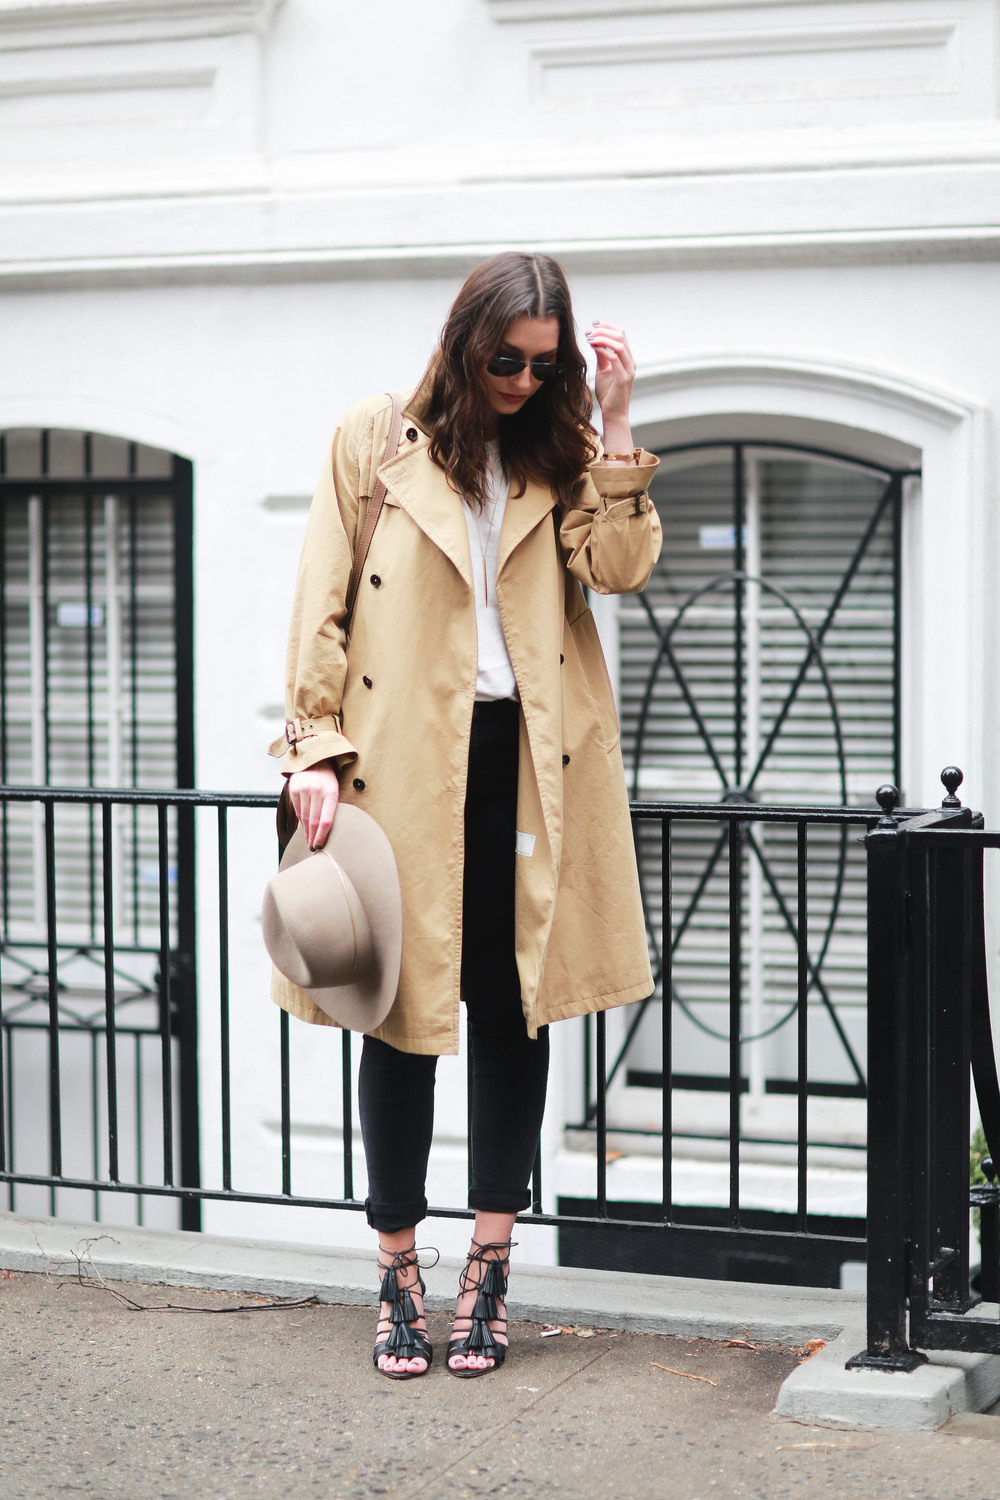 Paul Smith trench coat, acne studios jeans, t-shirt, janessa leone hat & heels. Fall/winter outfit